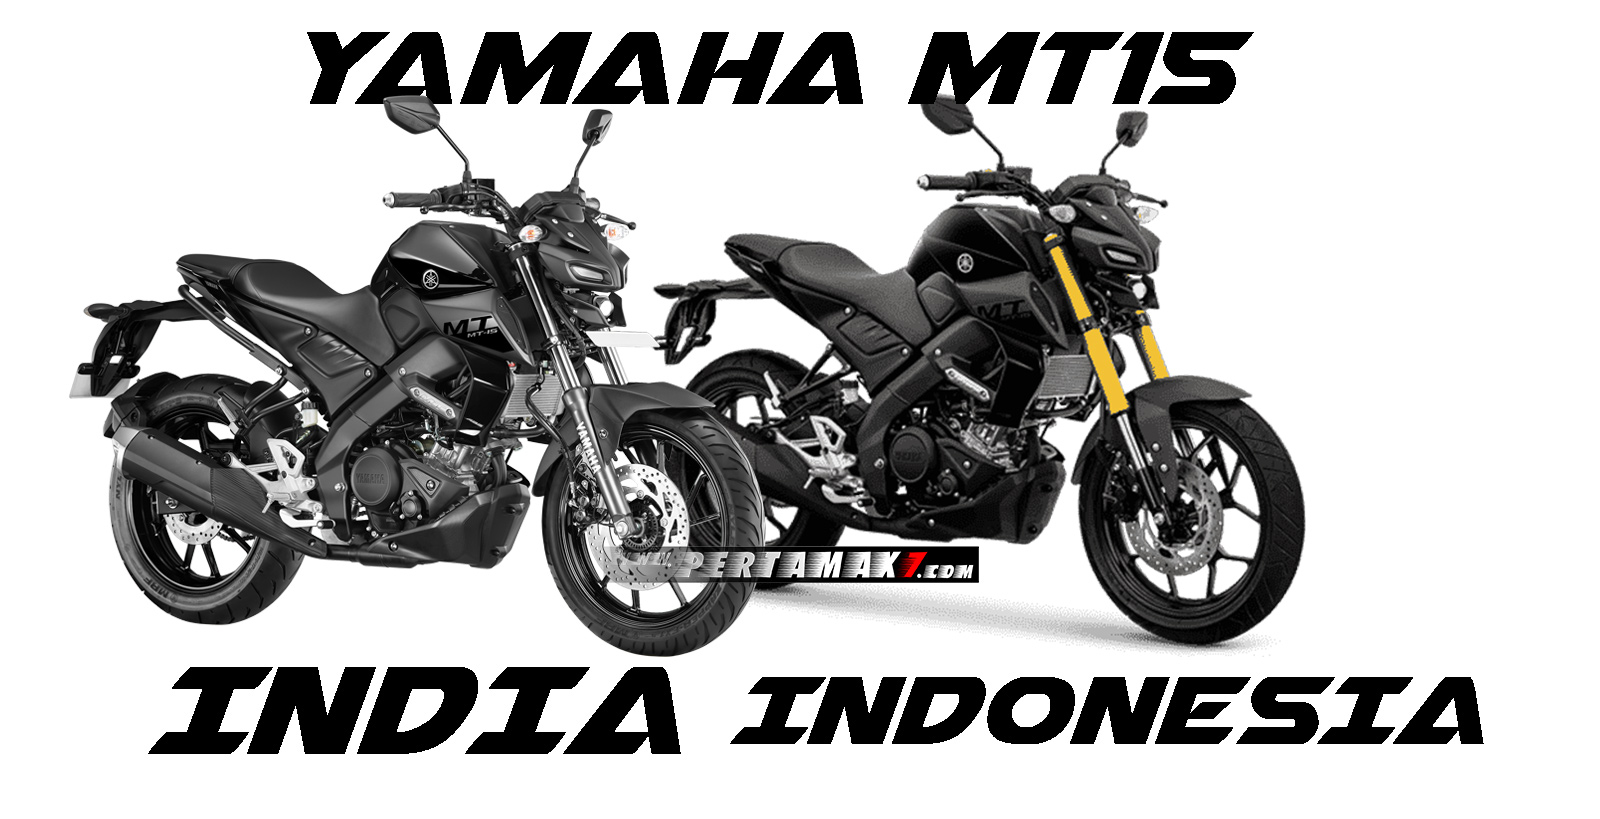 Bikers India Soal Yamaha MT15 VS India